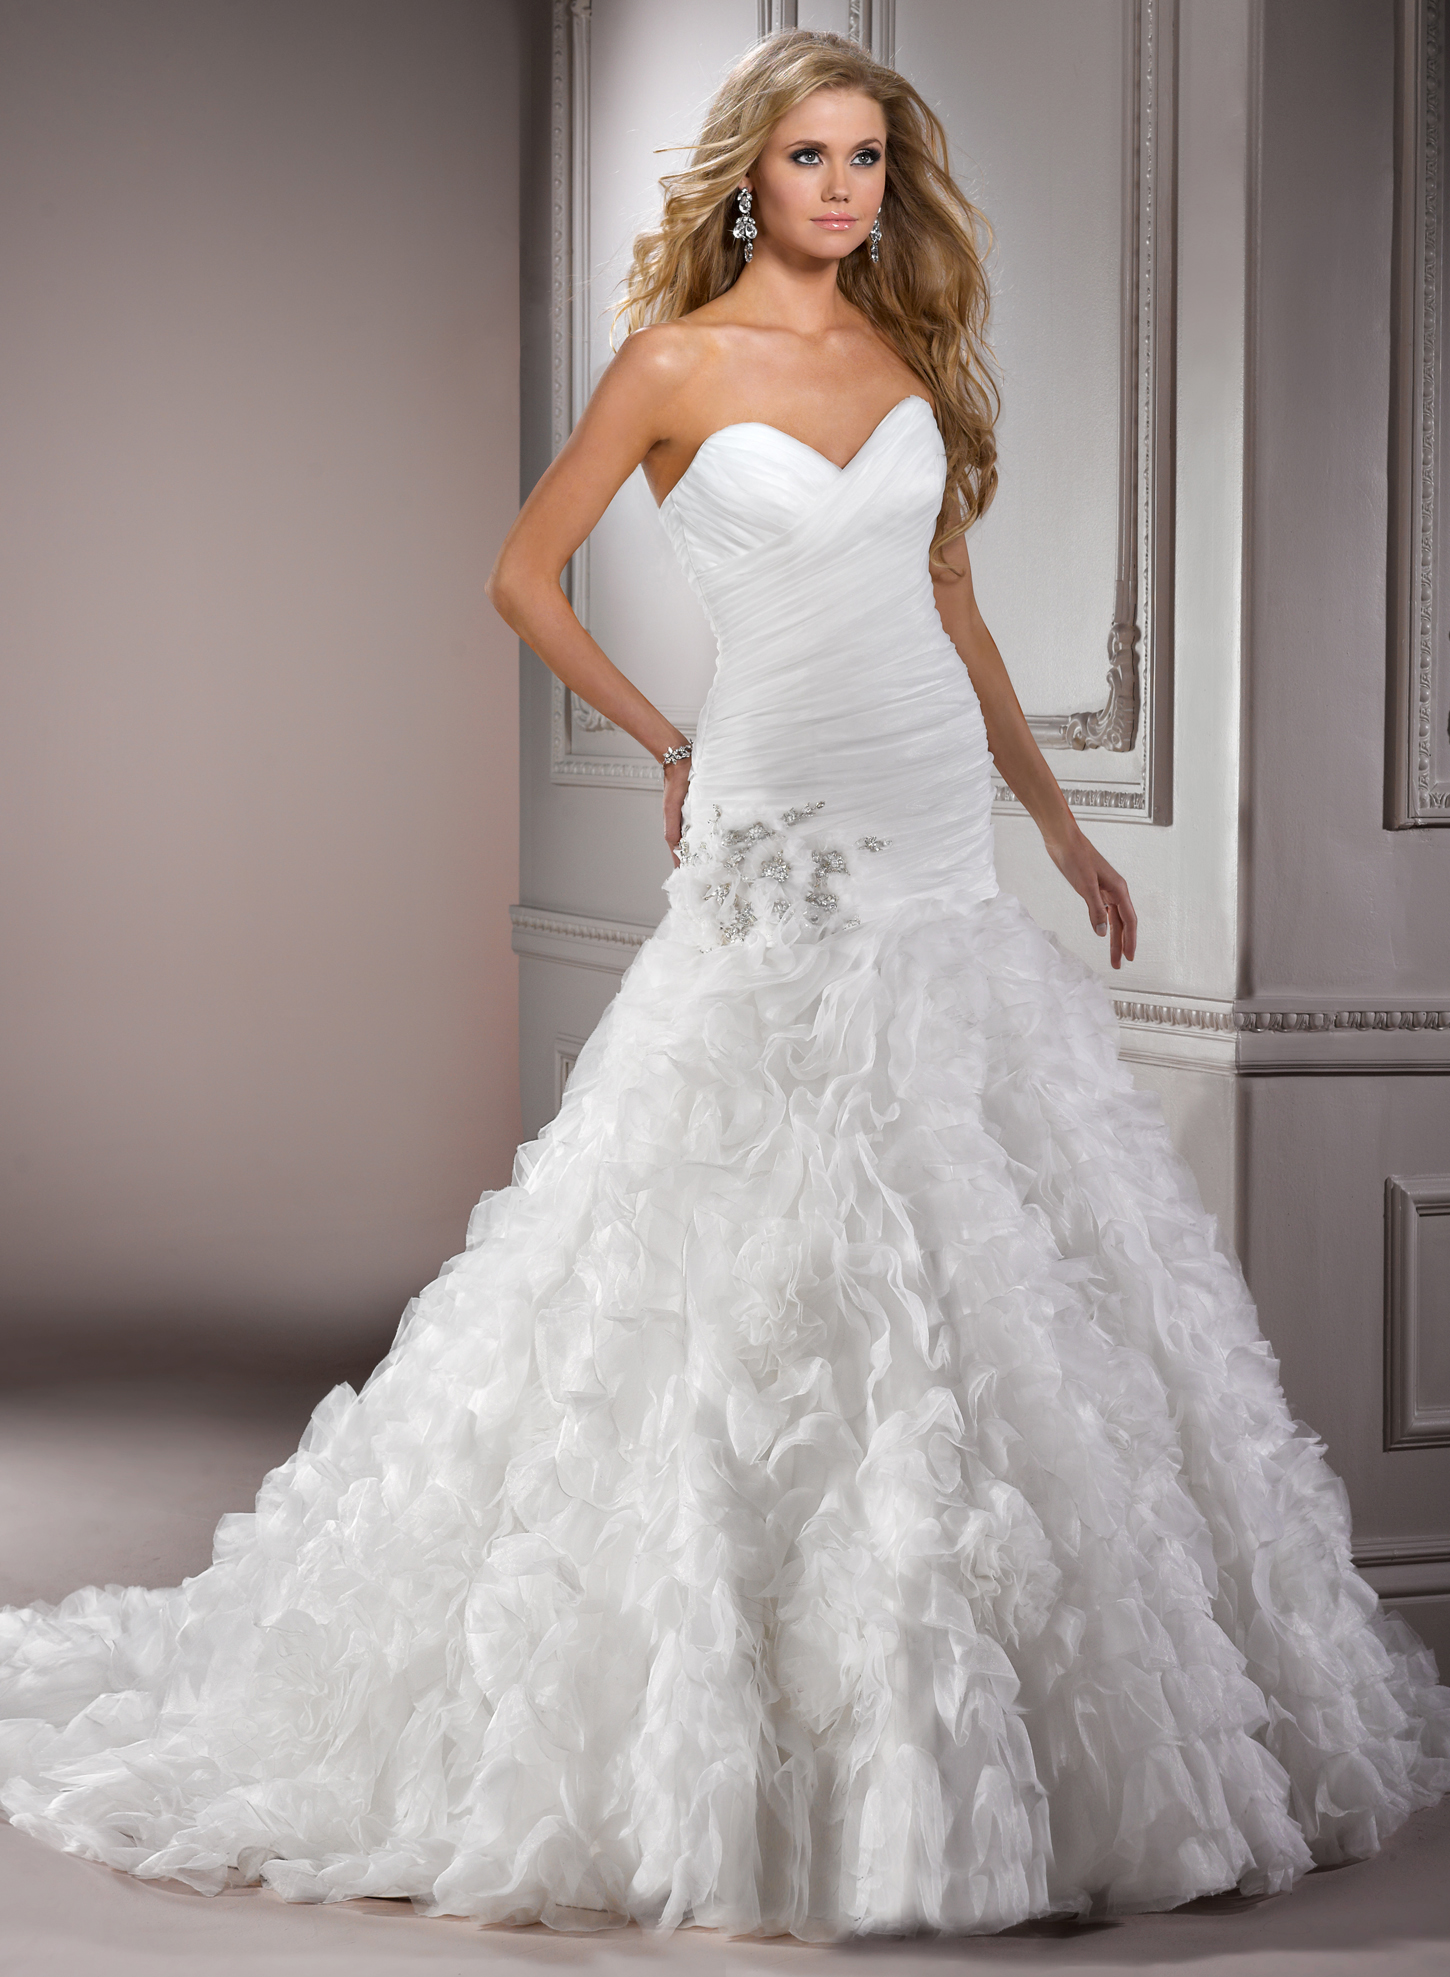 Maggie Sottero Spring 2013 Bridal Collection II